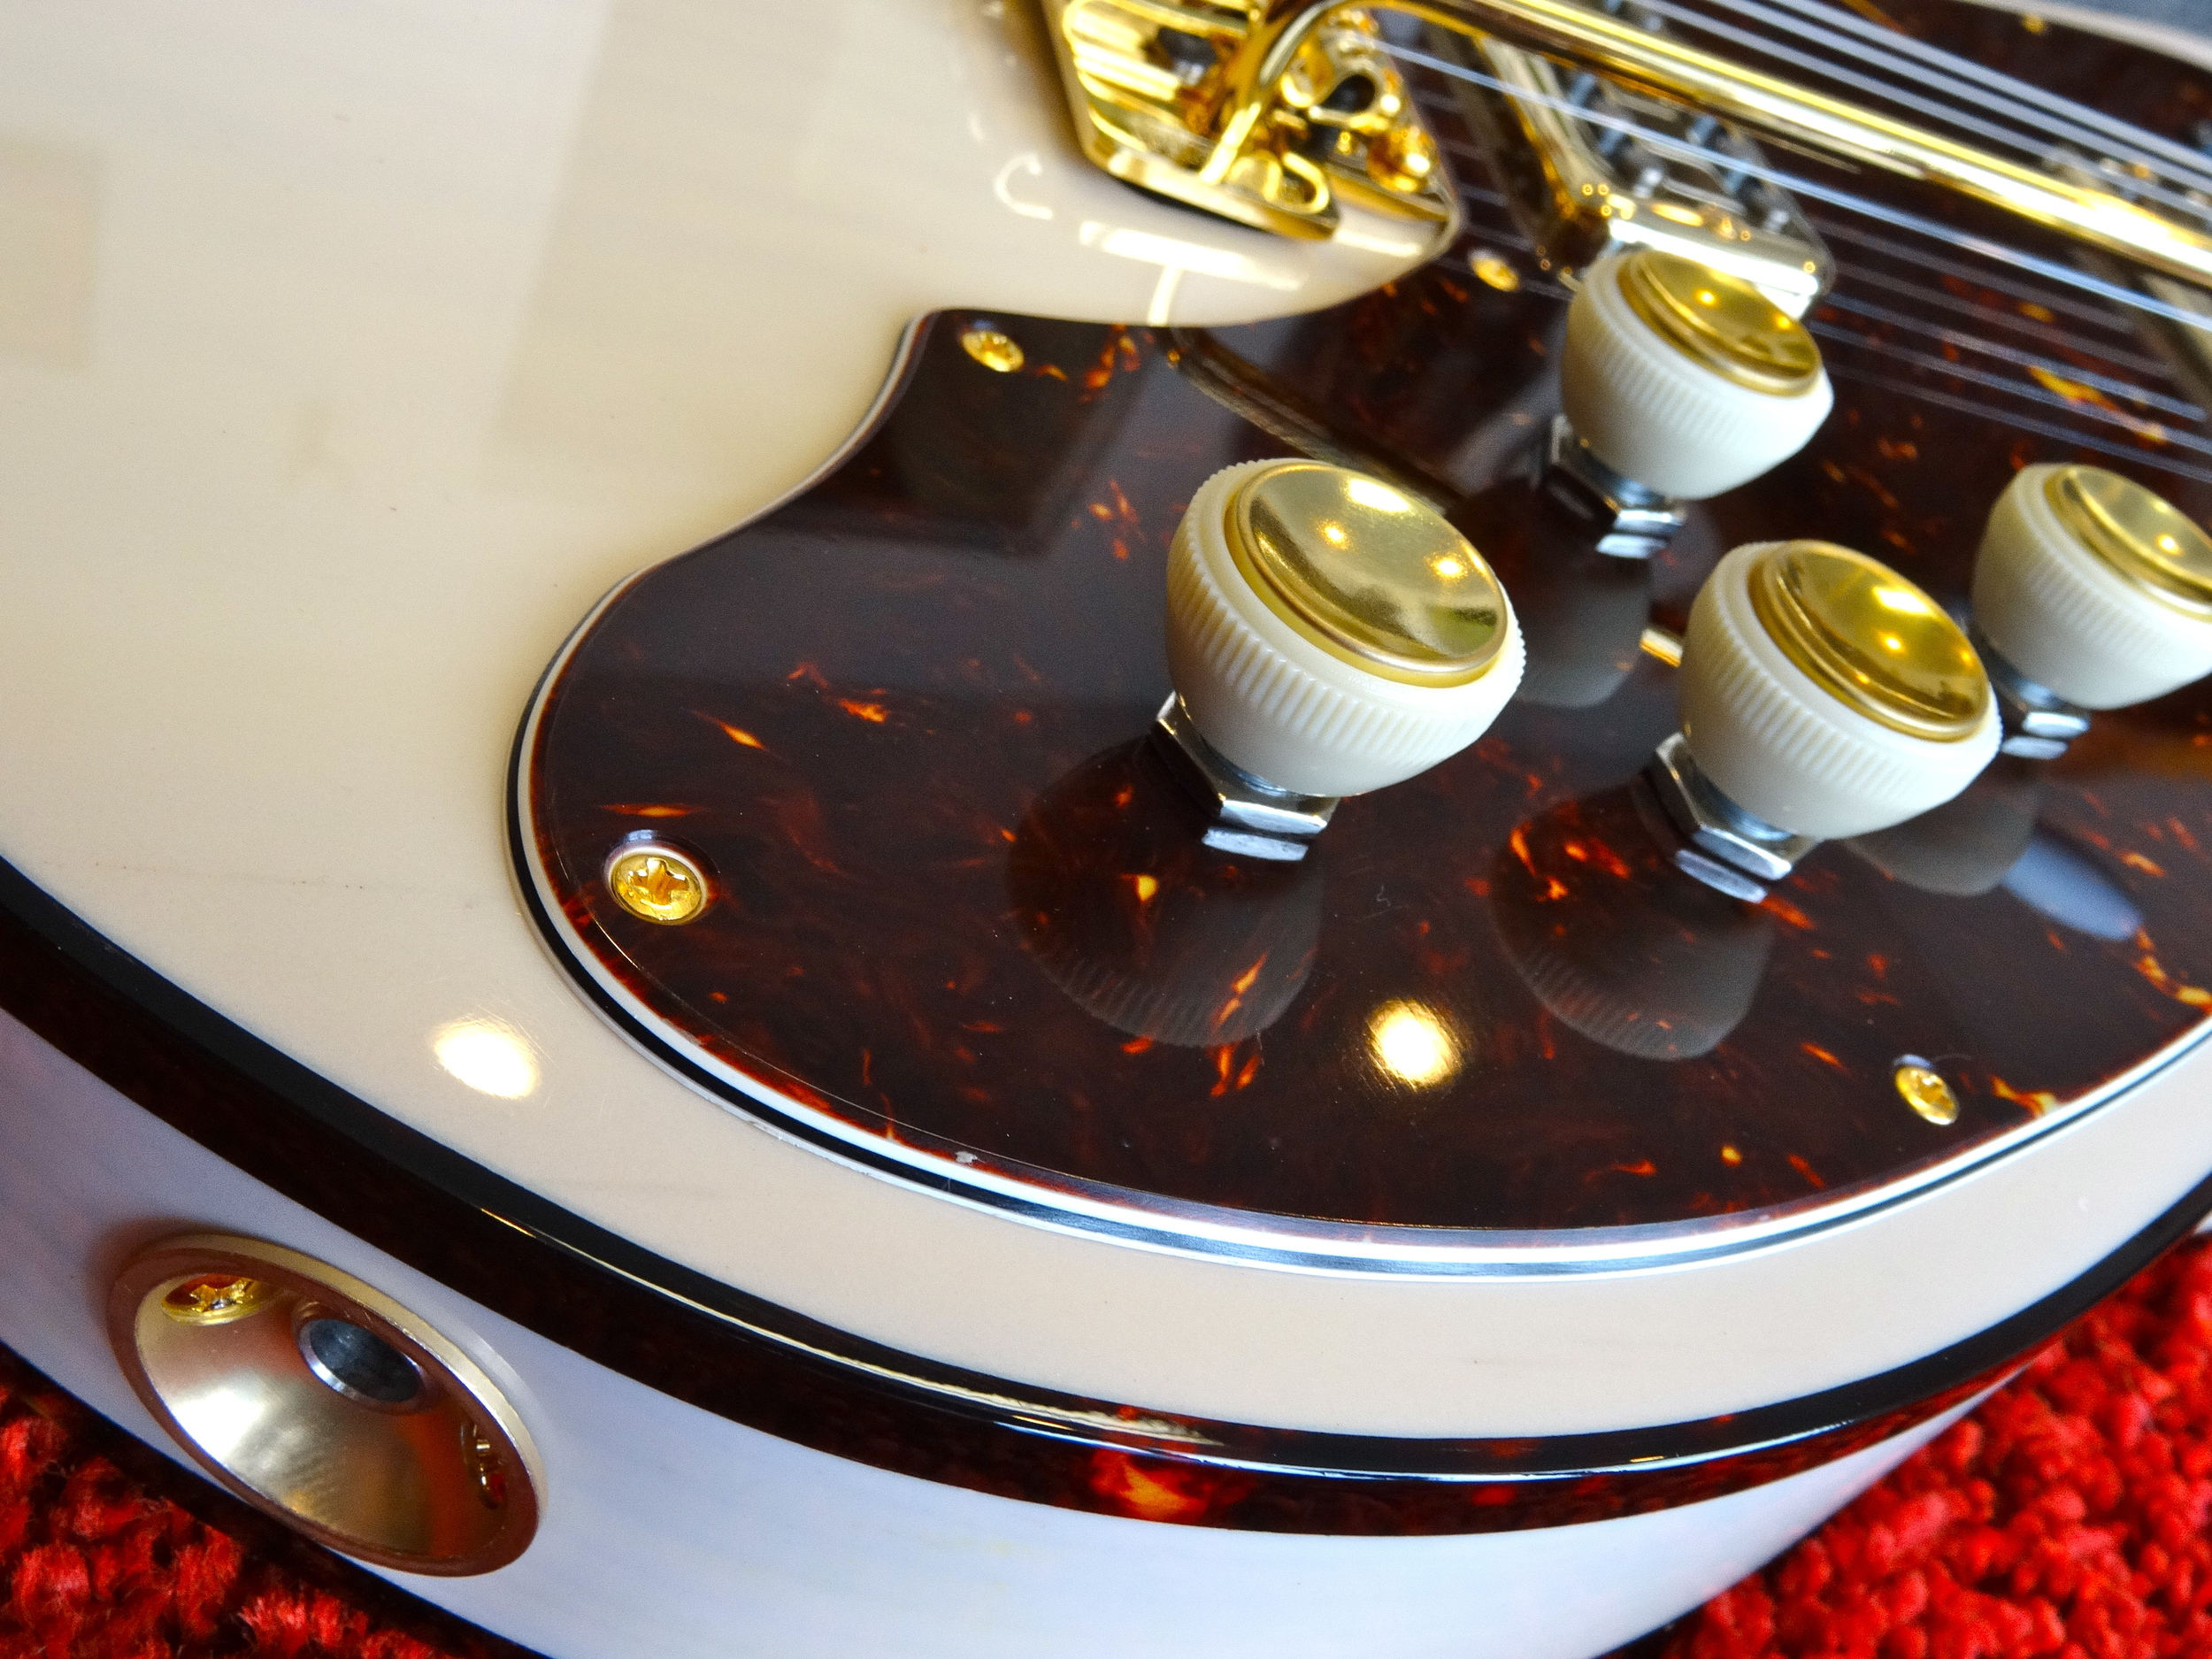 Gotta love those teacup knobs, and check out that gorgeous tortoise binding!